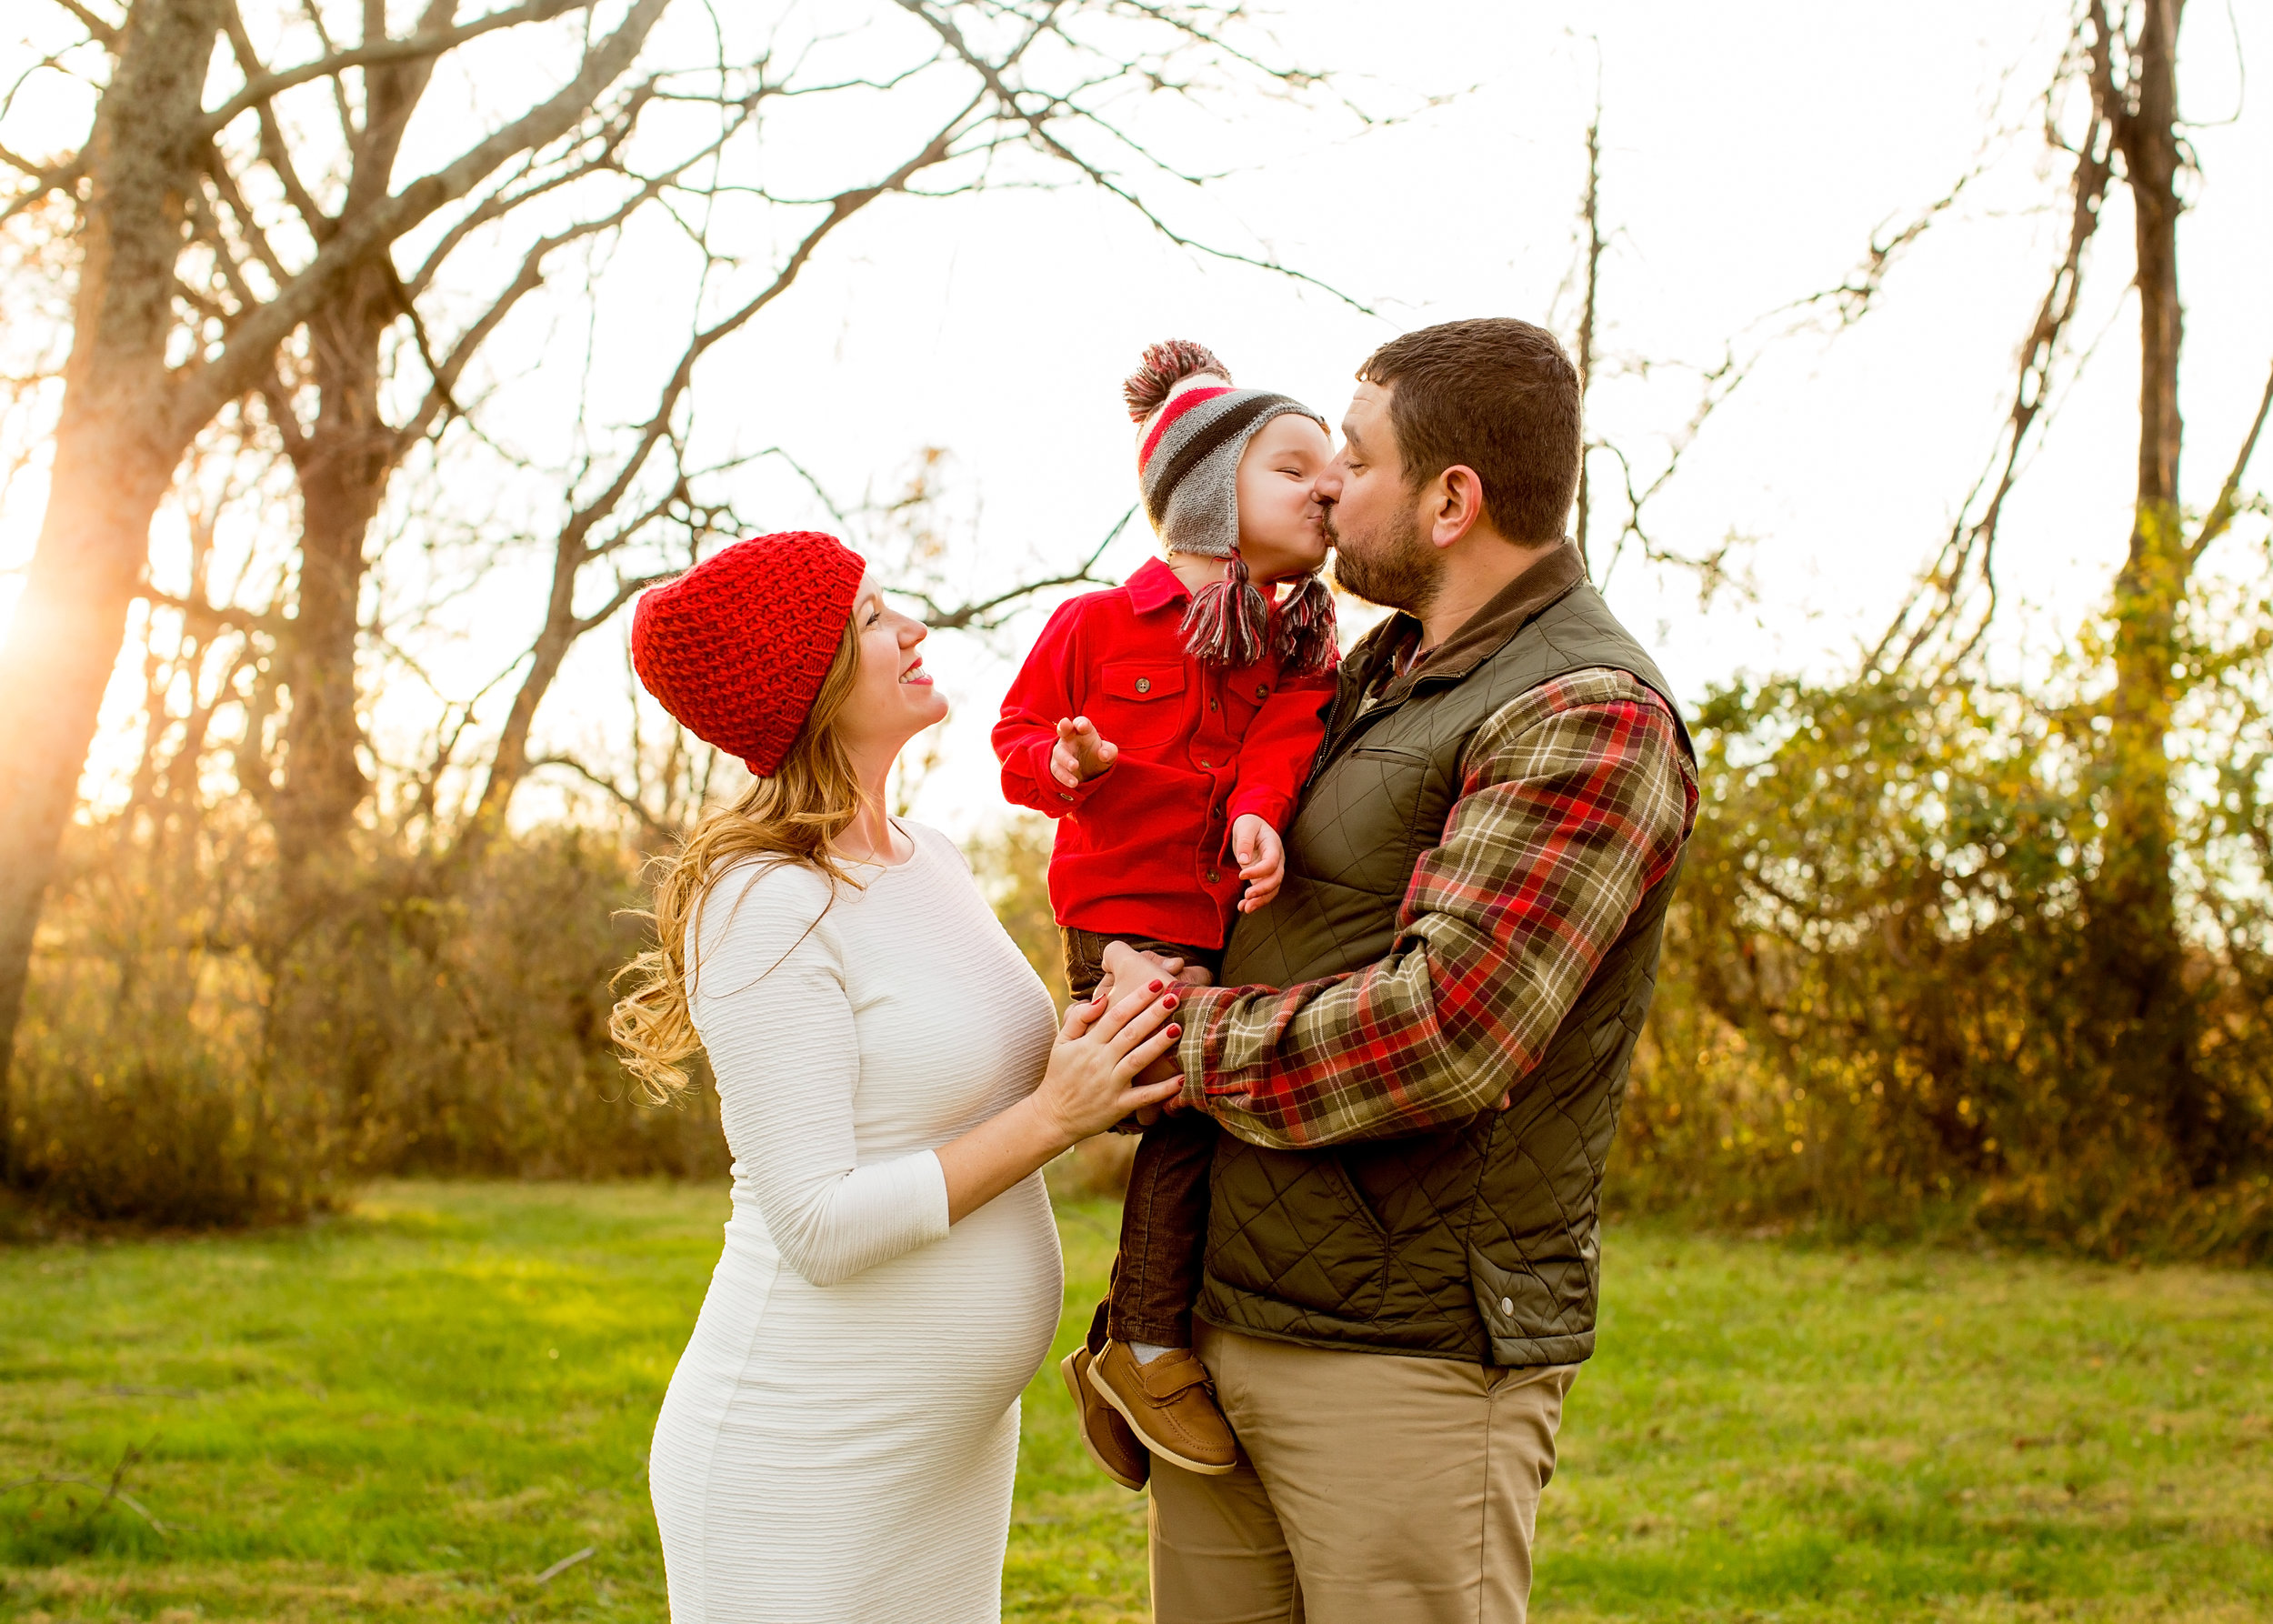 Ashburn Virginia Maternity Family Photography 1.jpg